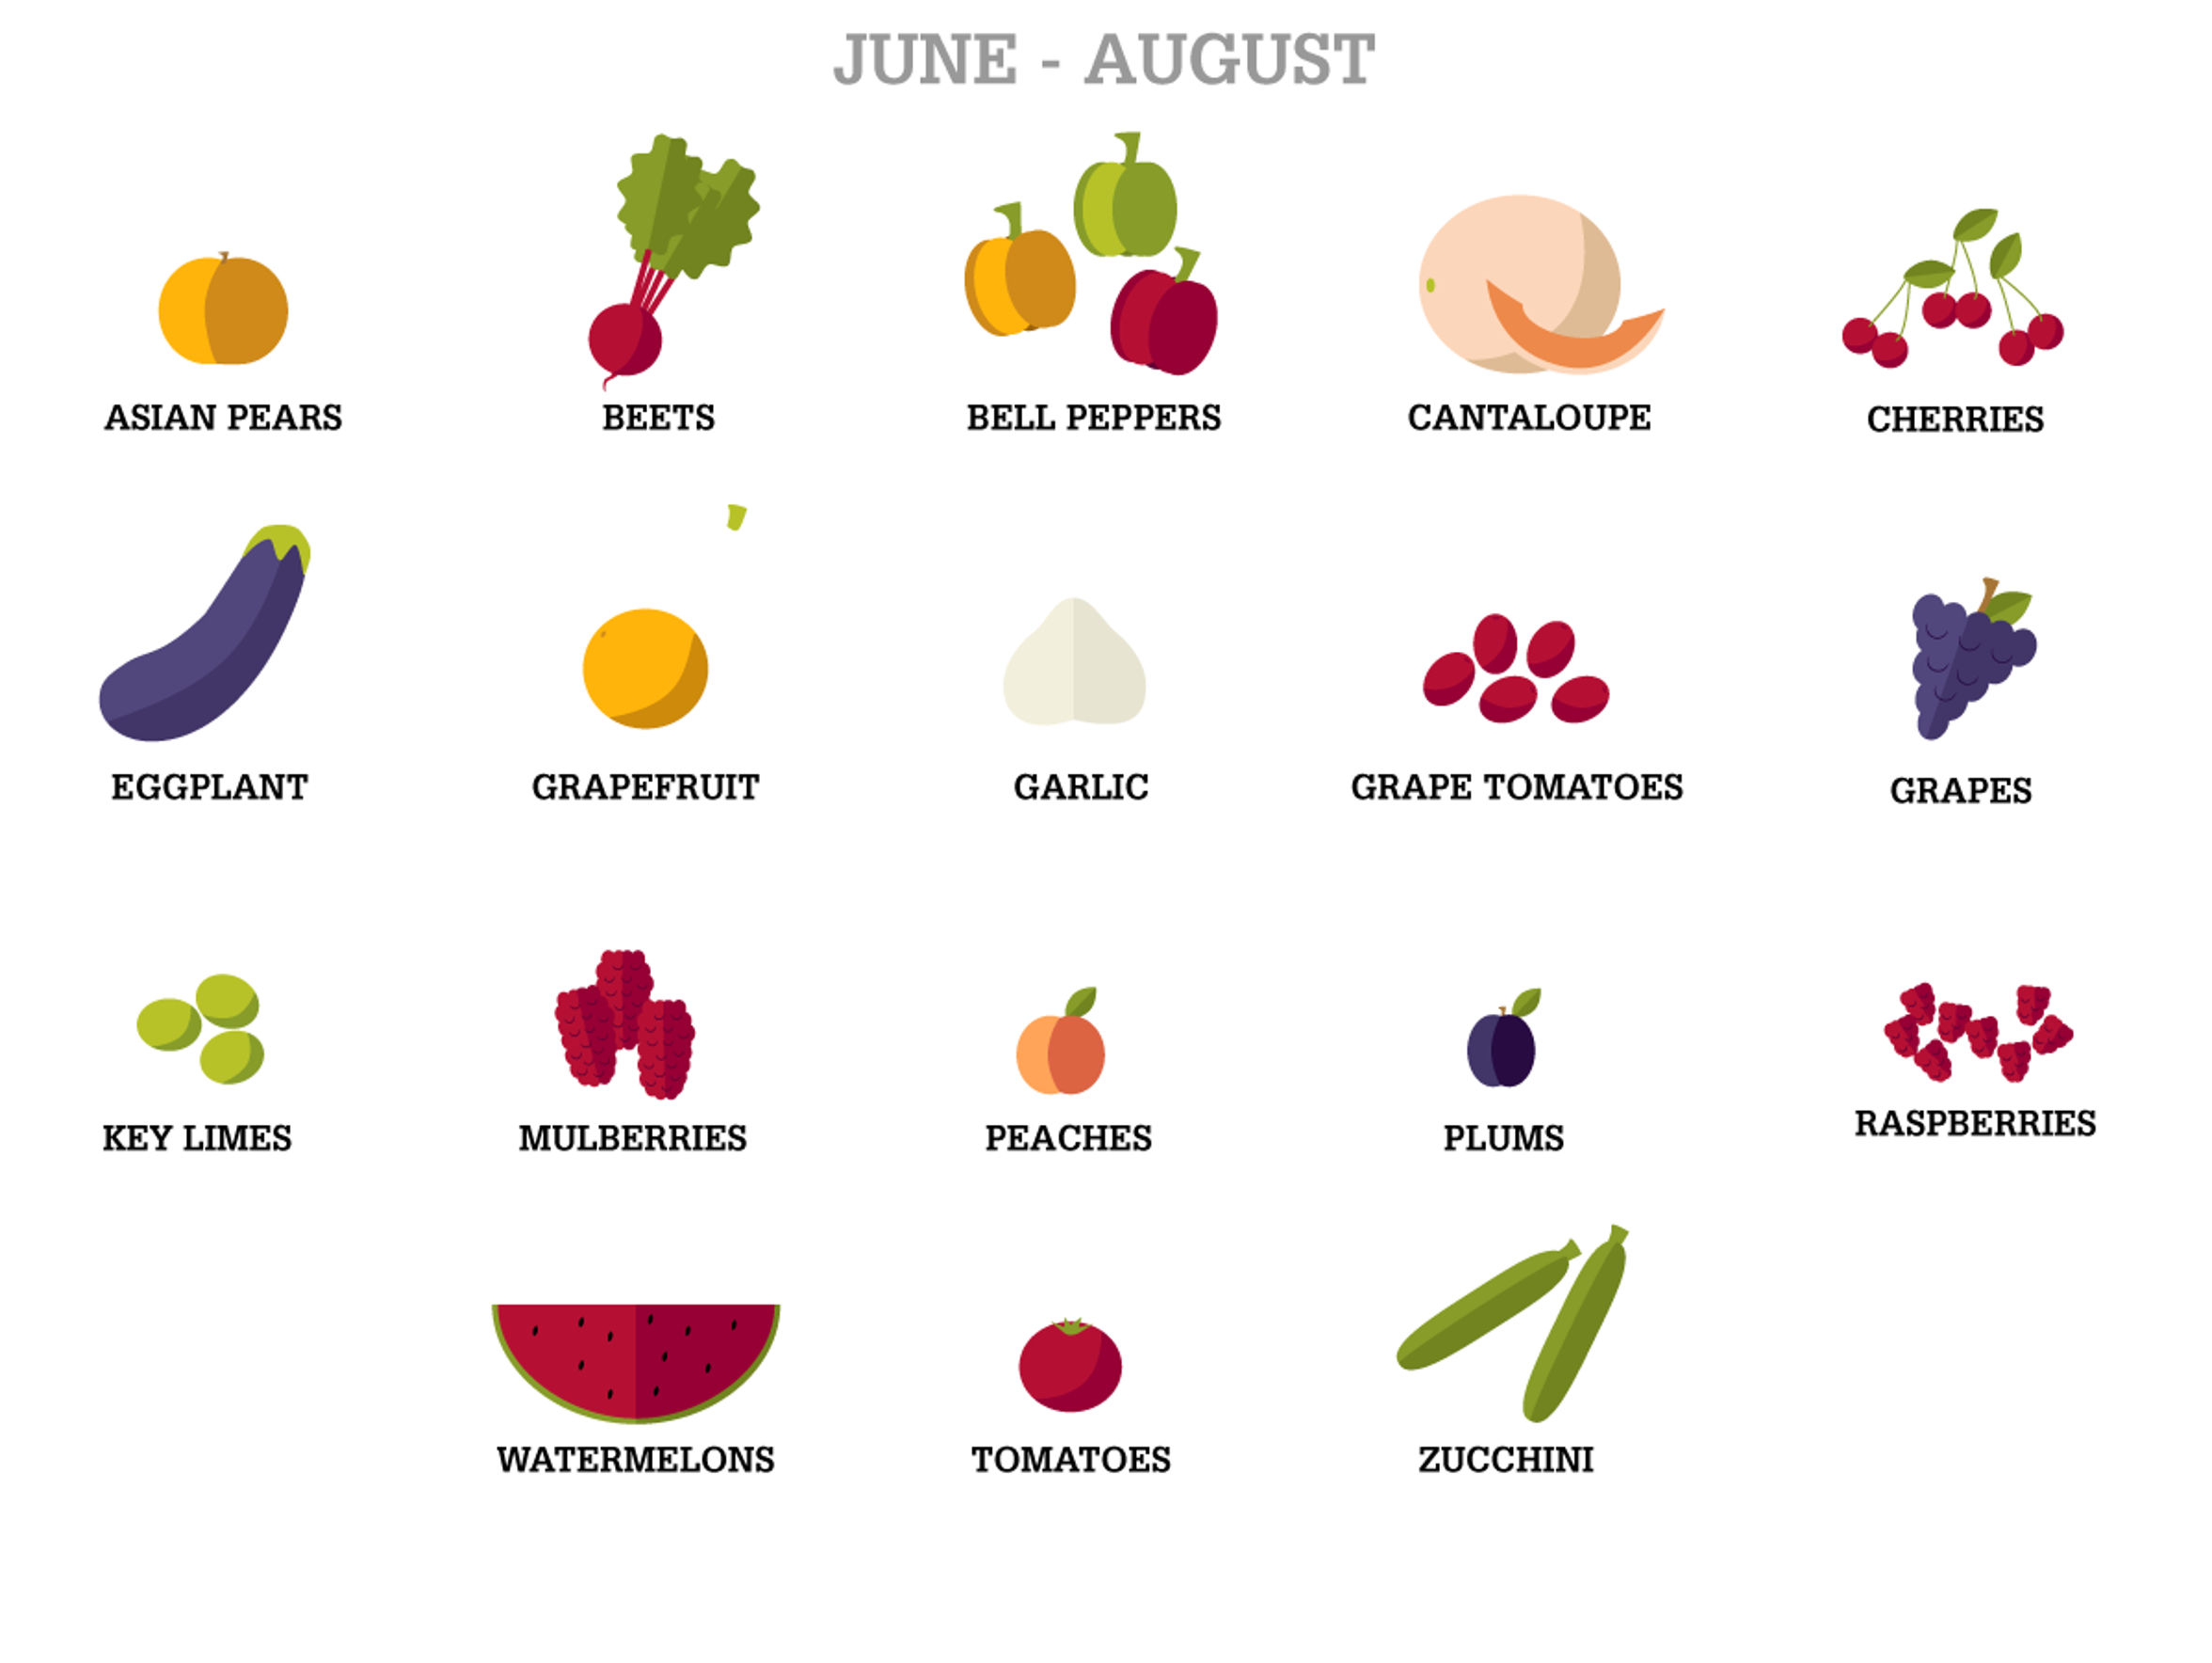 These fruits and vegetables are seasonal during the